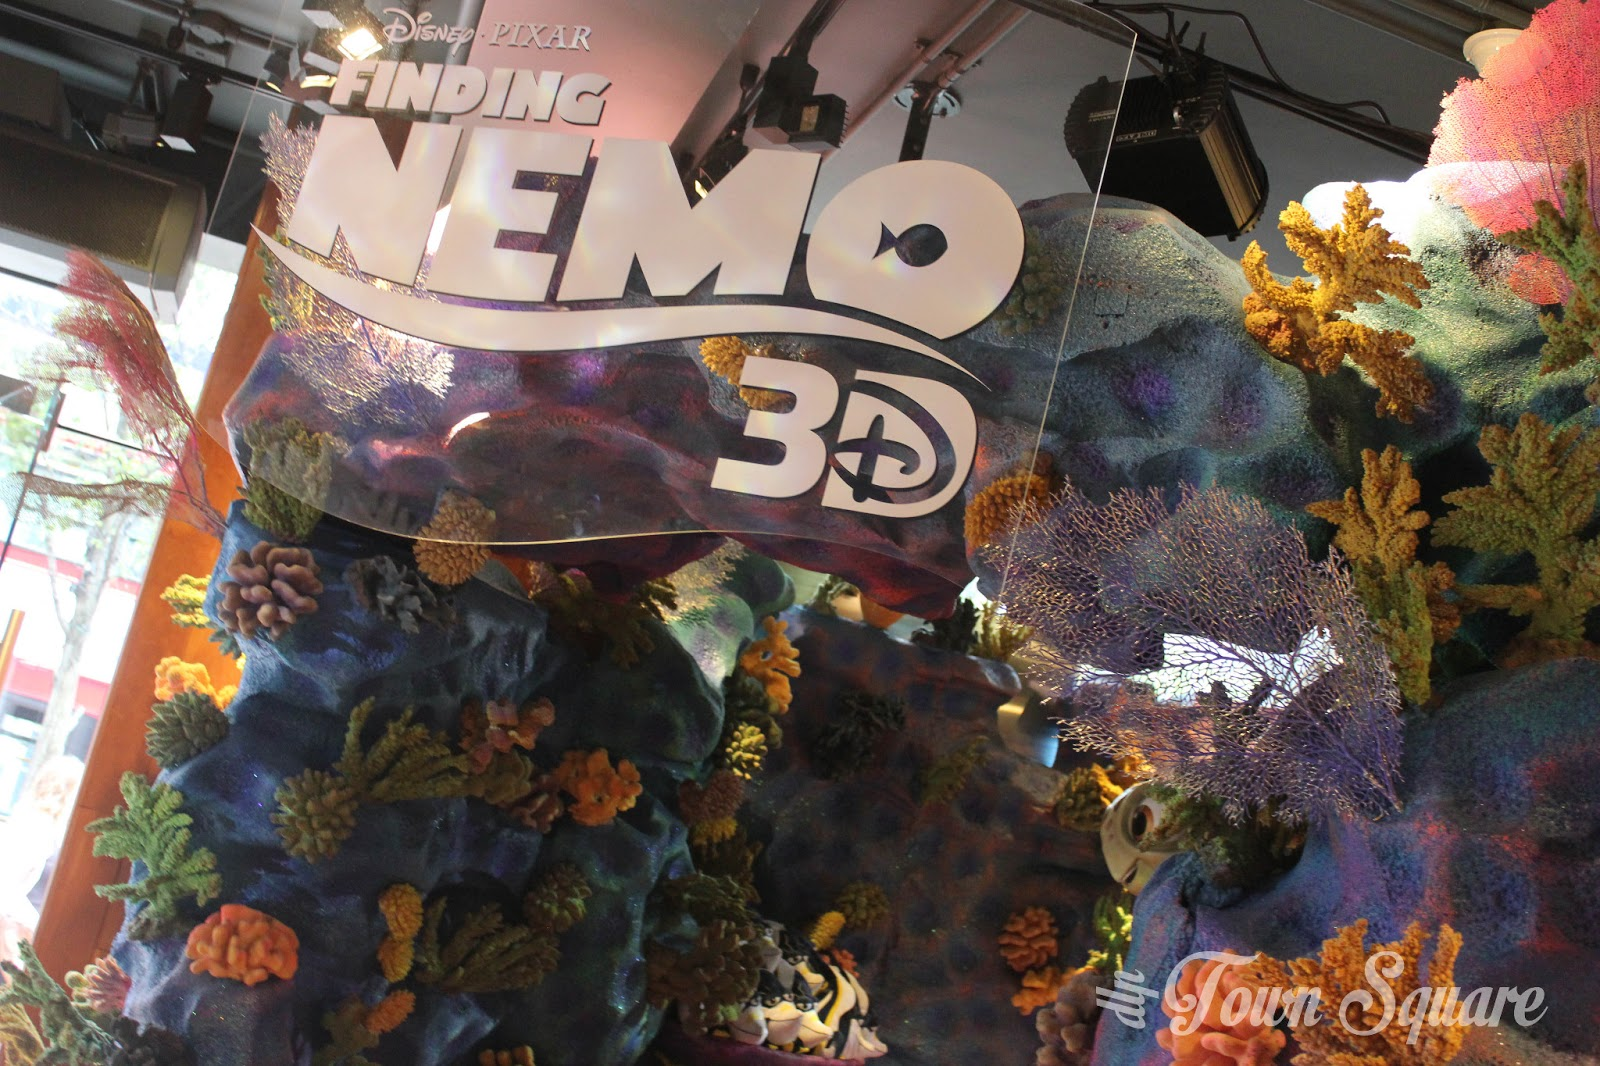 Finding Nemo section